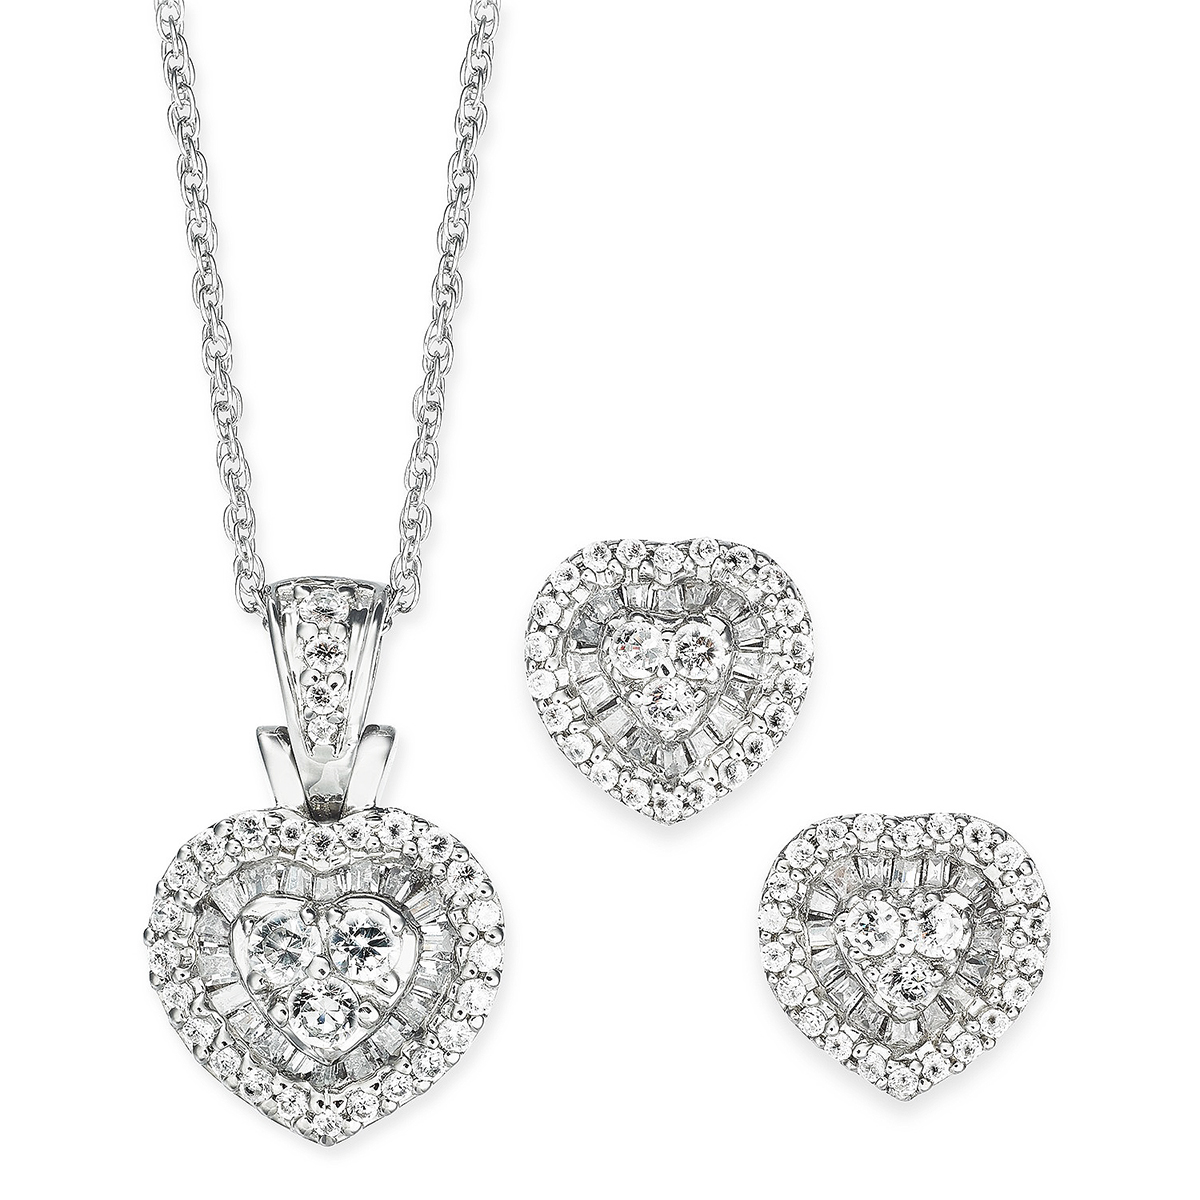 This Stunning Diamond Set Is Over $600 Off — Plus More Jewelry Picks!